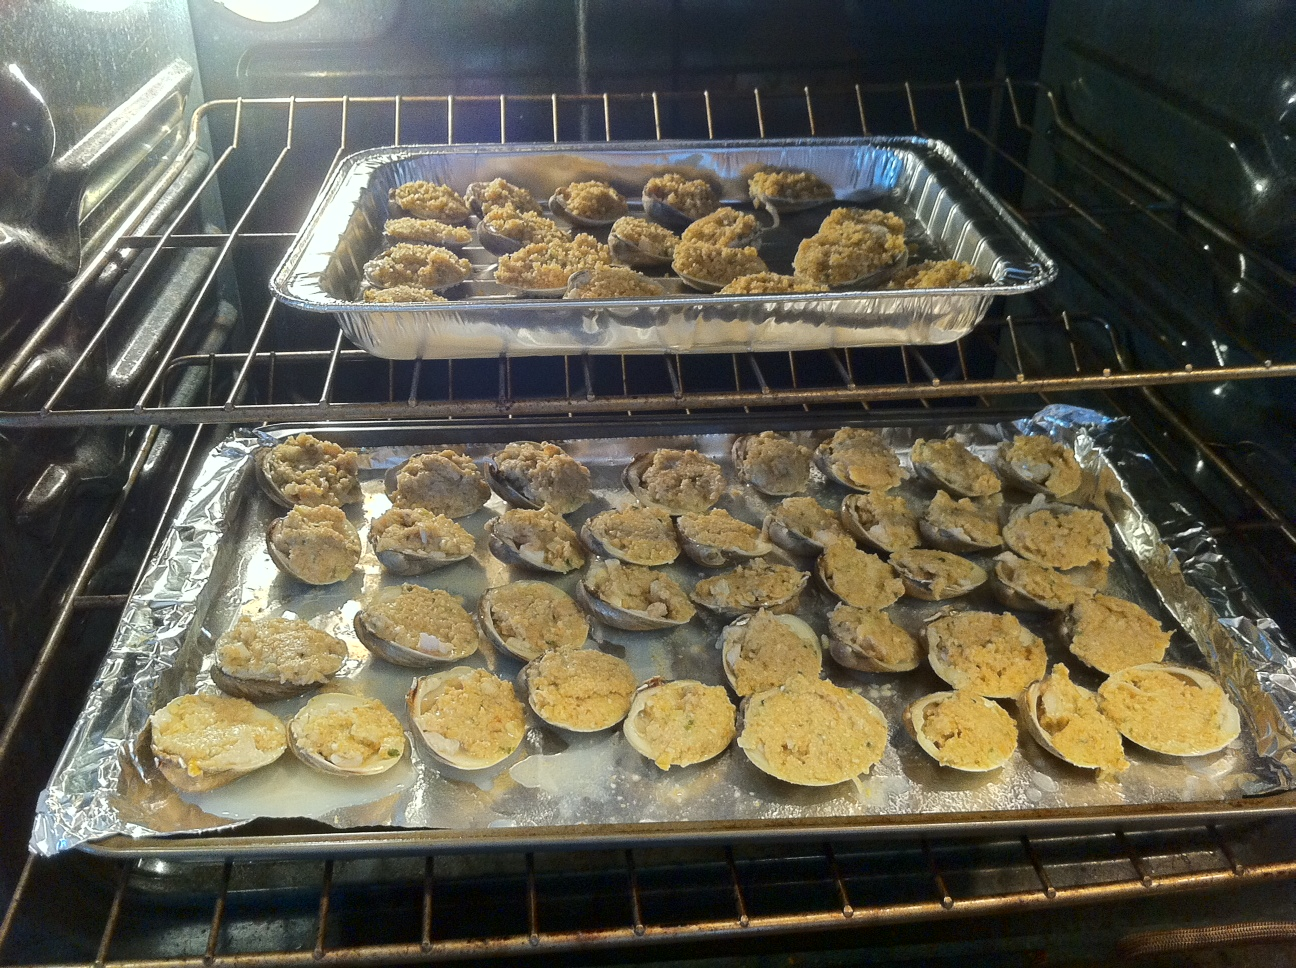 Baked Clams In The Oven!